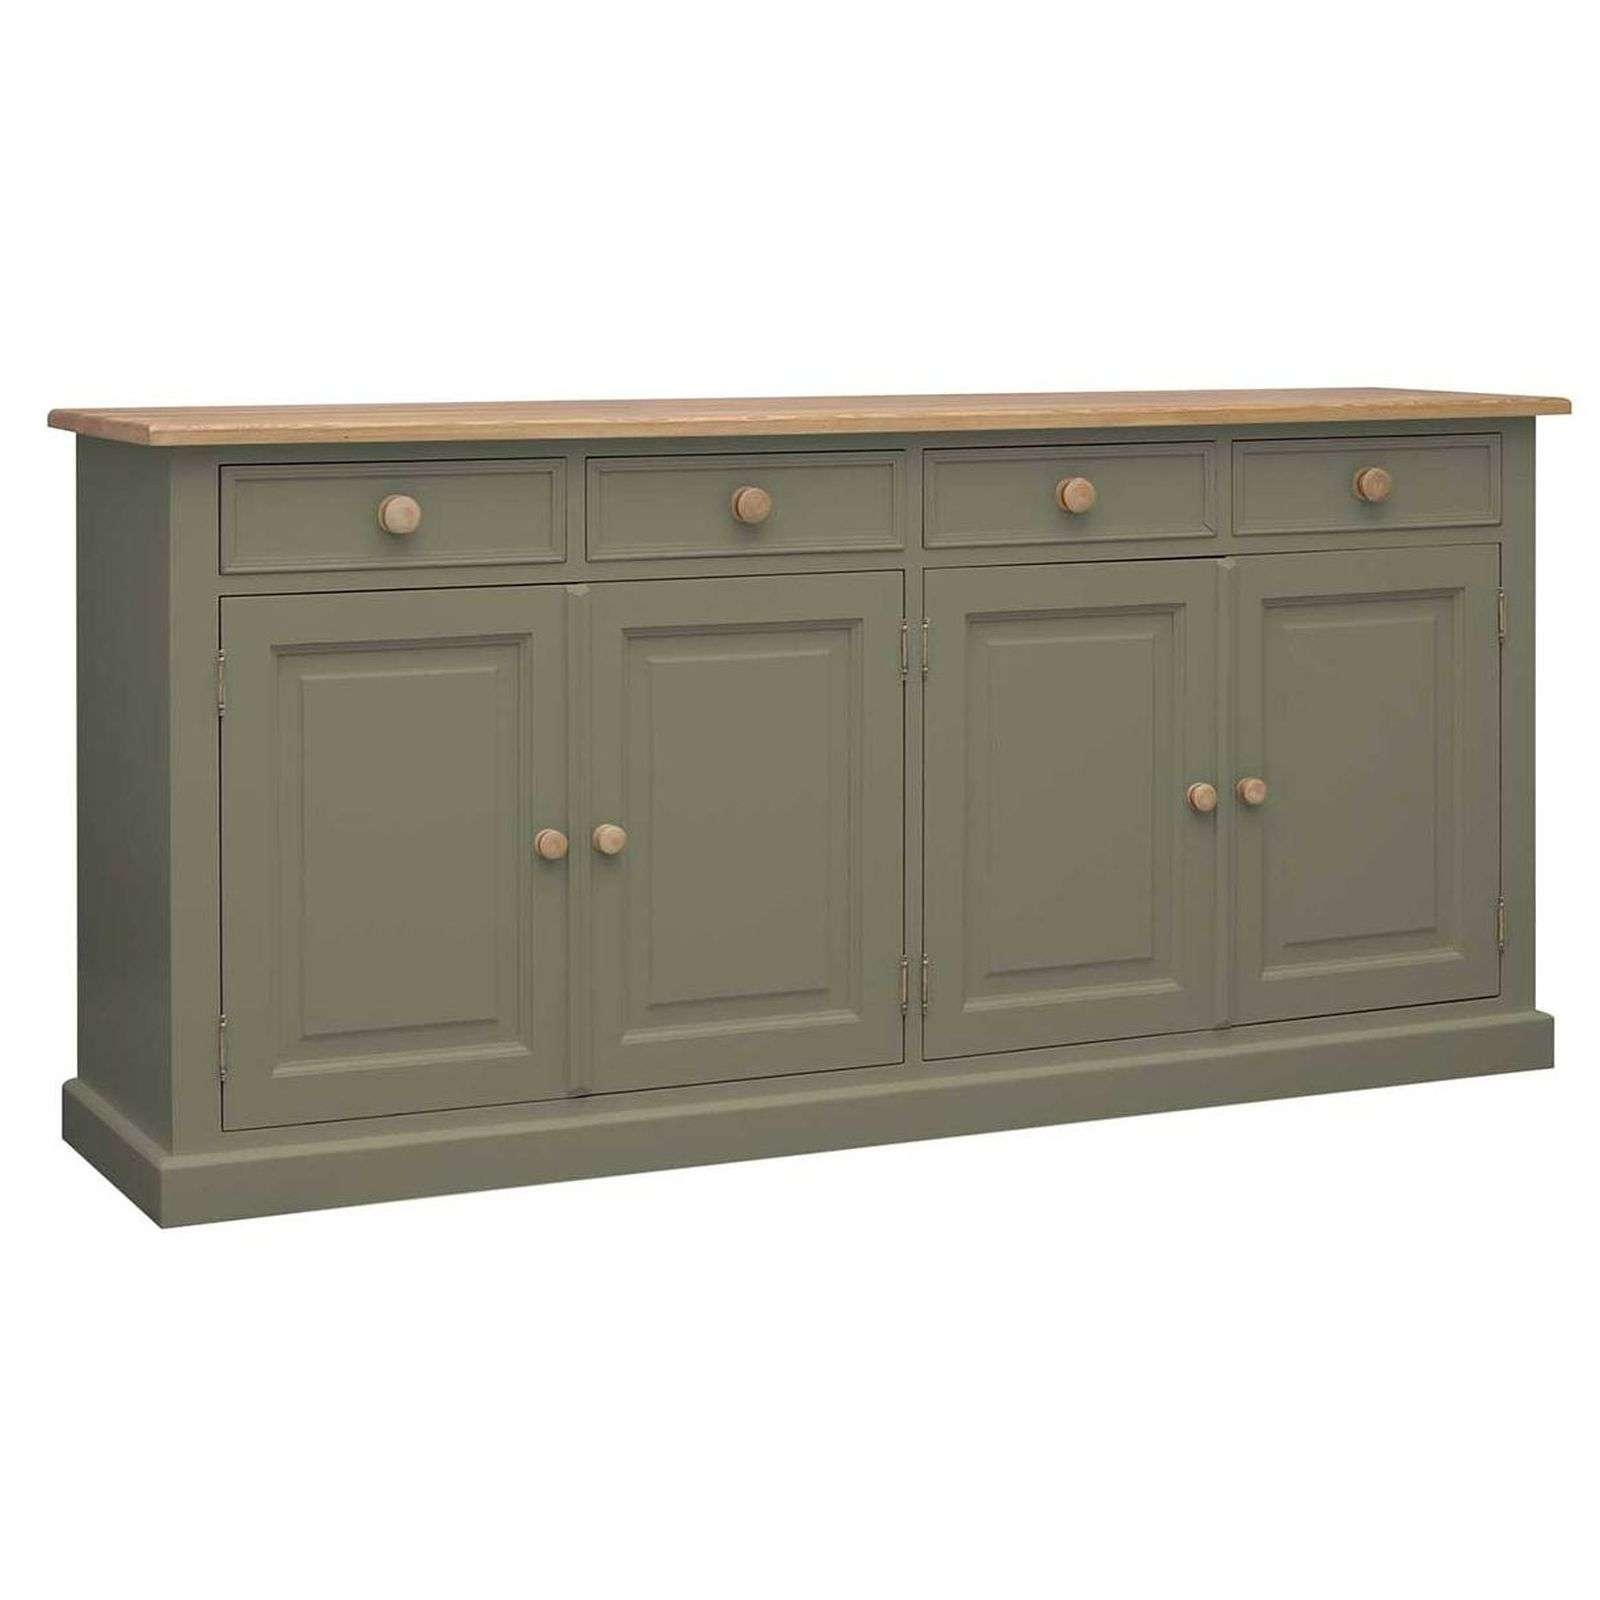 Harrogate Green Painted Pine Furniture Extra Large Sideboard In Pine Sideboards (View 7 of 20)